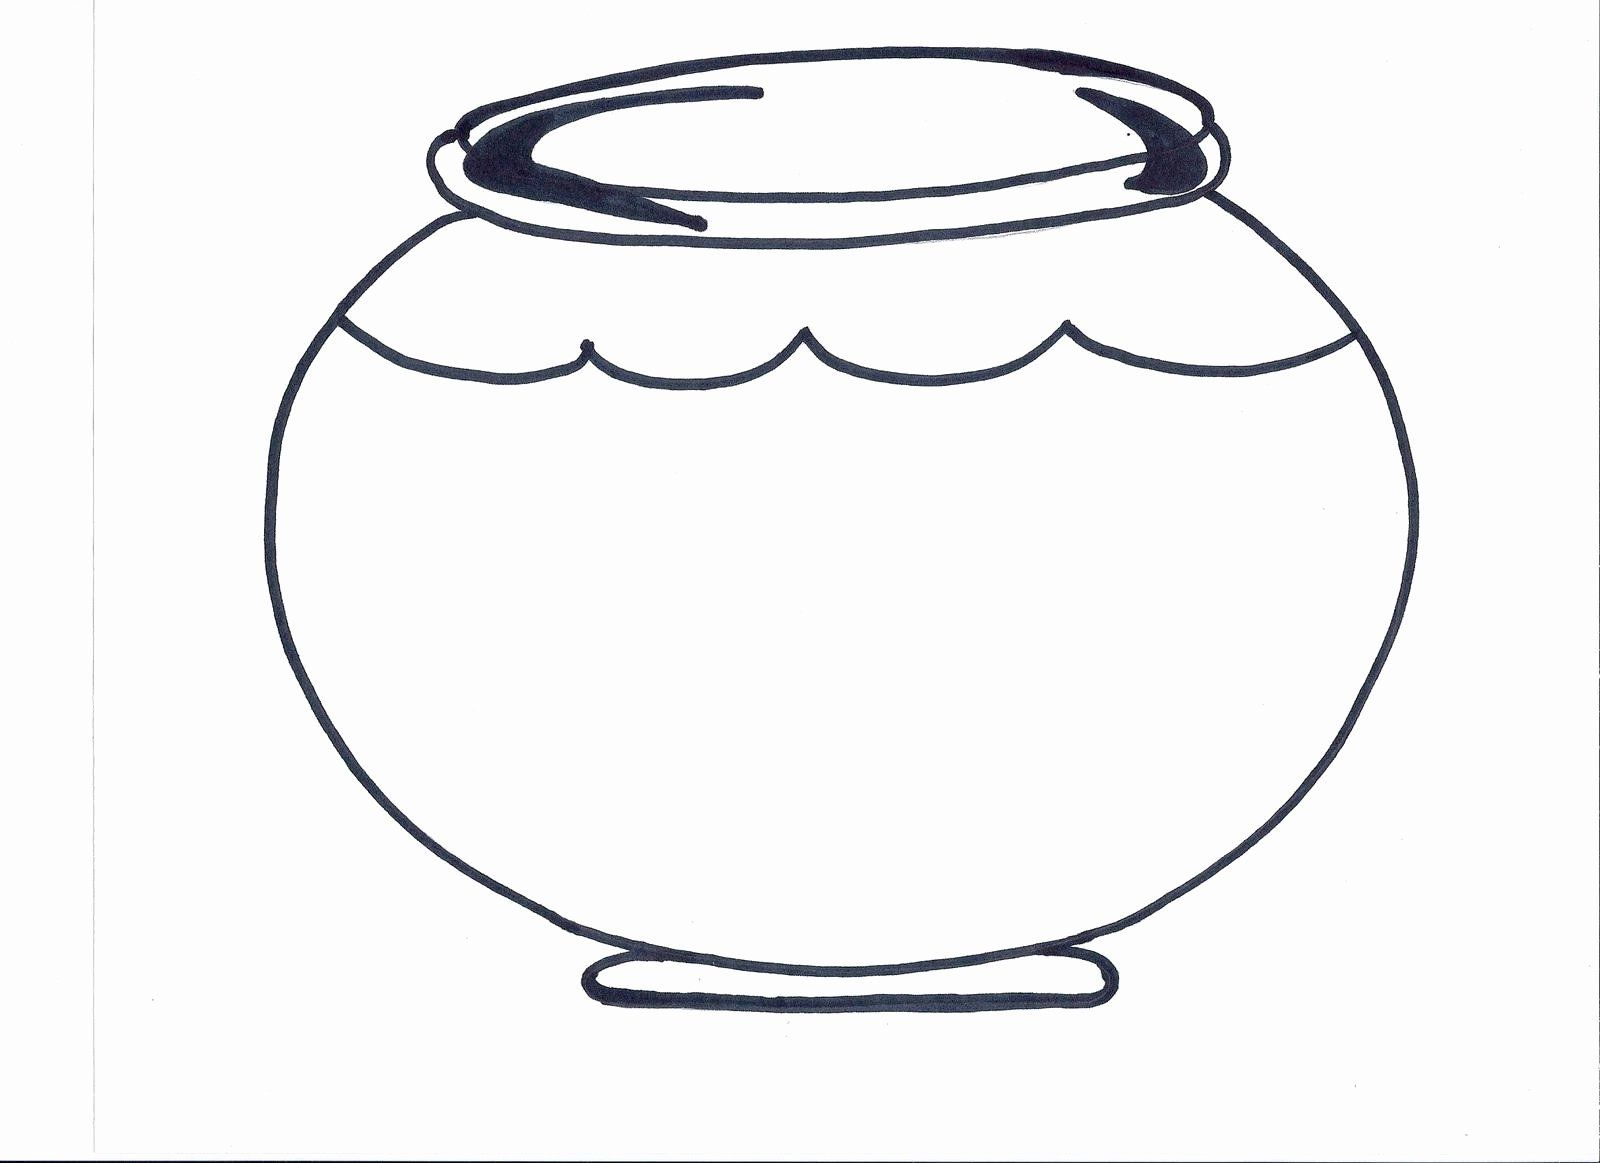 Fish Bowl Coloring Page Fresh 31 Free Printable Fish Coloring Pages Fish Bowl Coloring In 2020 Bee Coloring Pages Frozen Coloring Pages New Year Coloring Pages